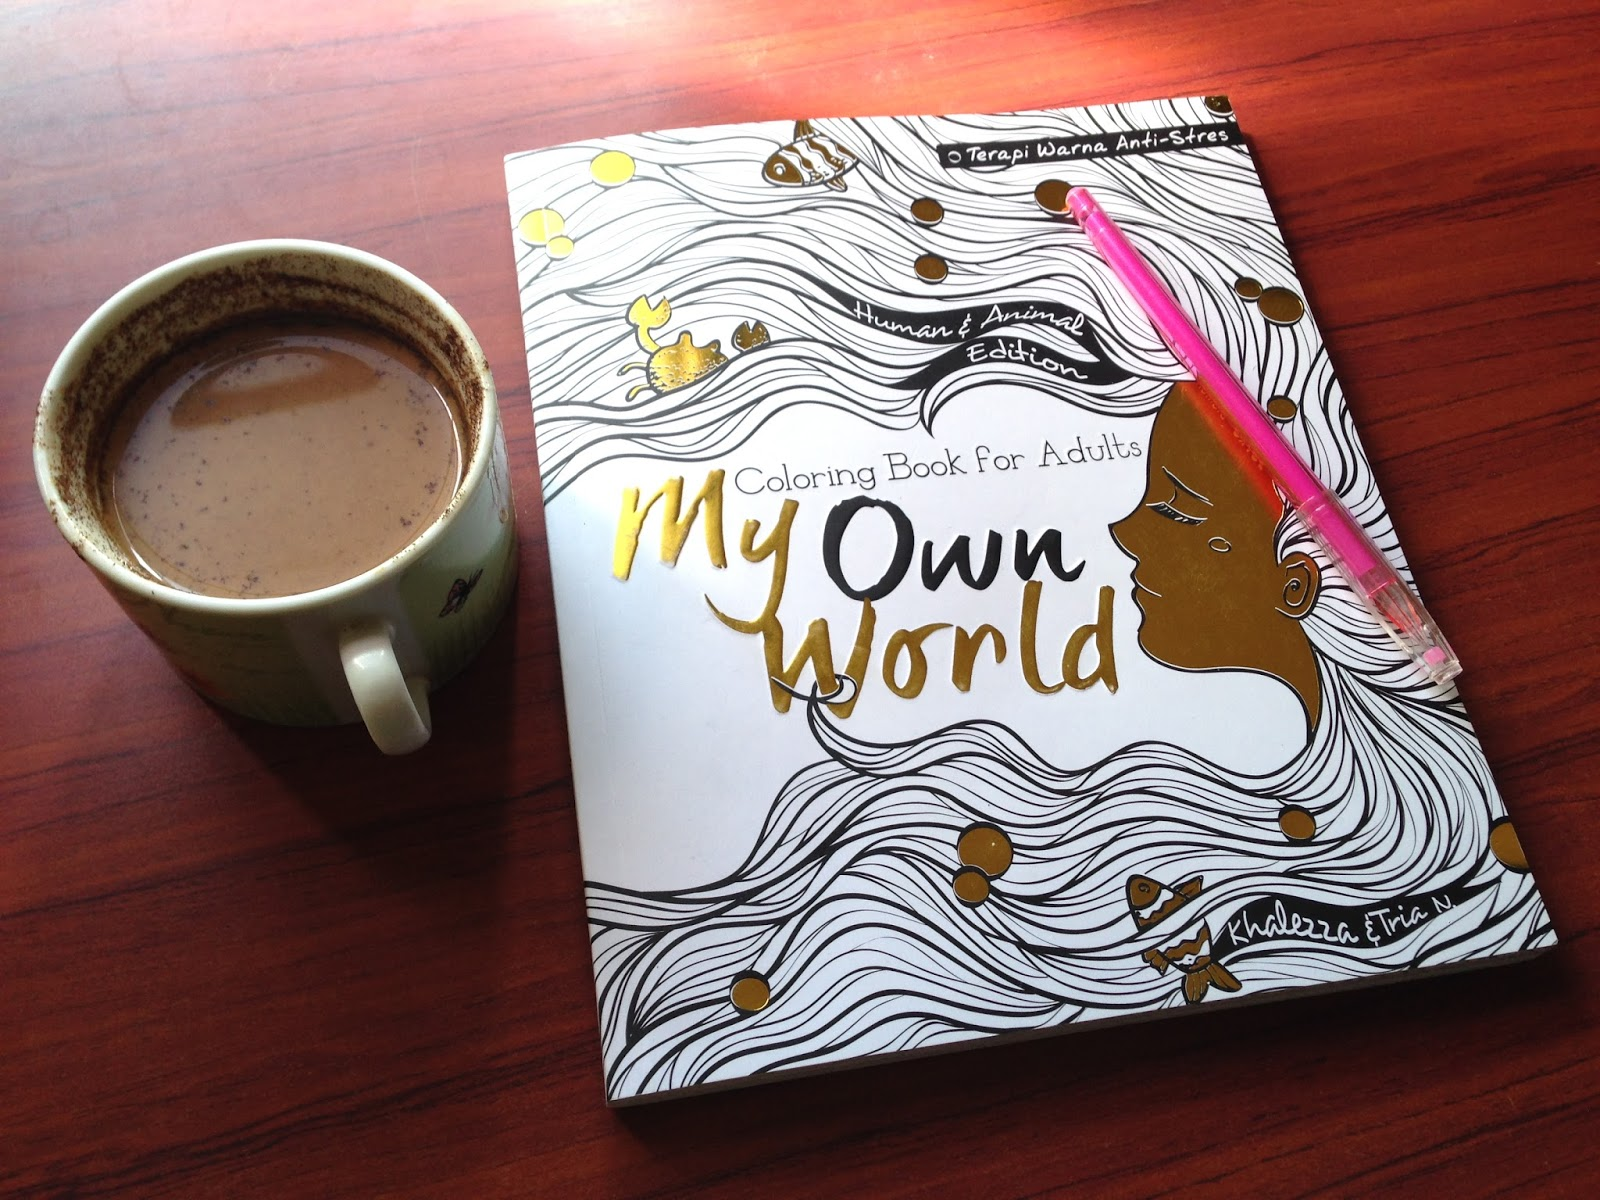 My Own WorldColoring Book For Adults Tearpi Warna Anti Stres Review